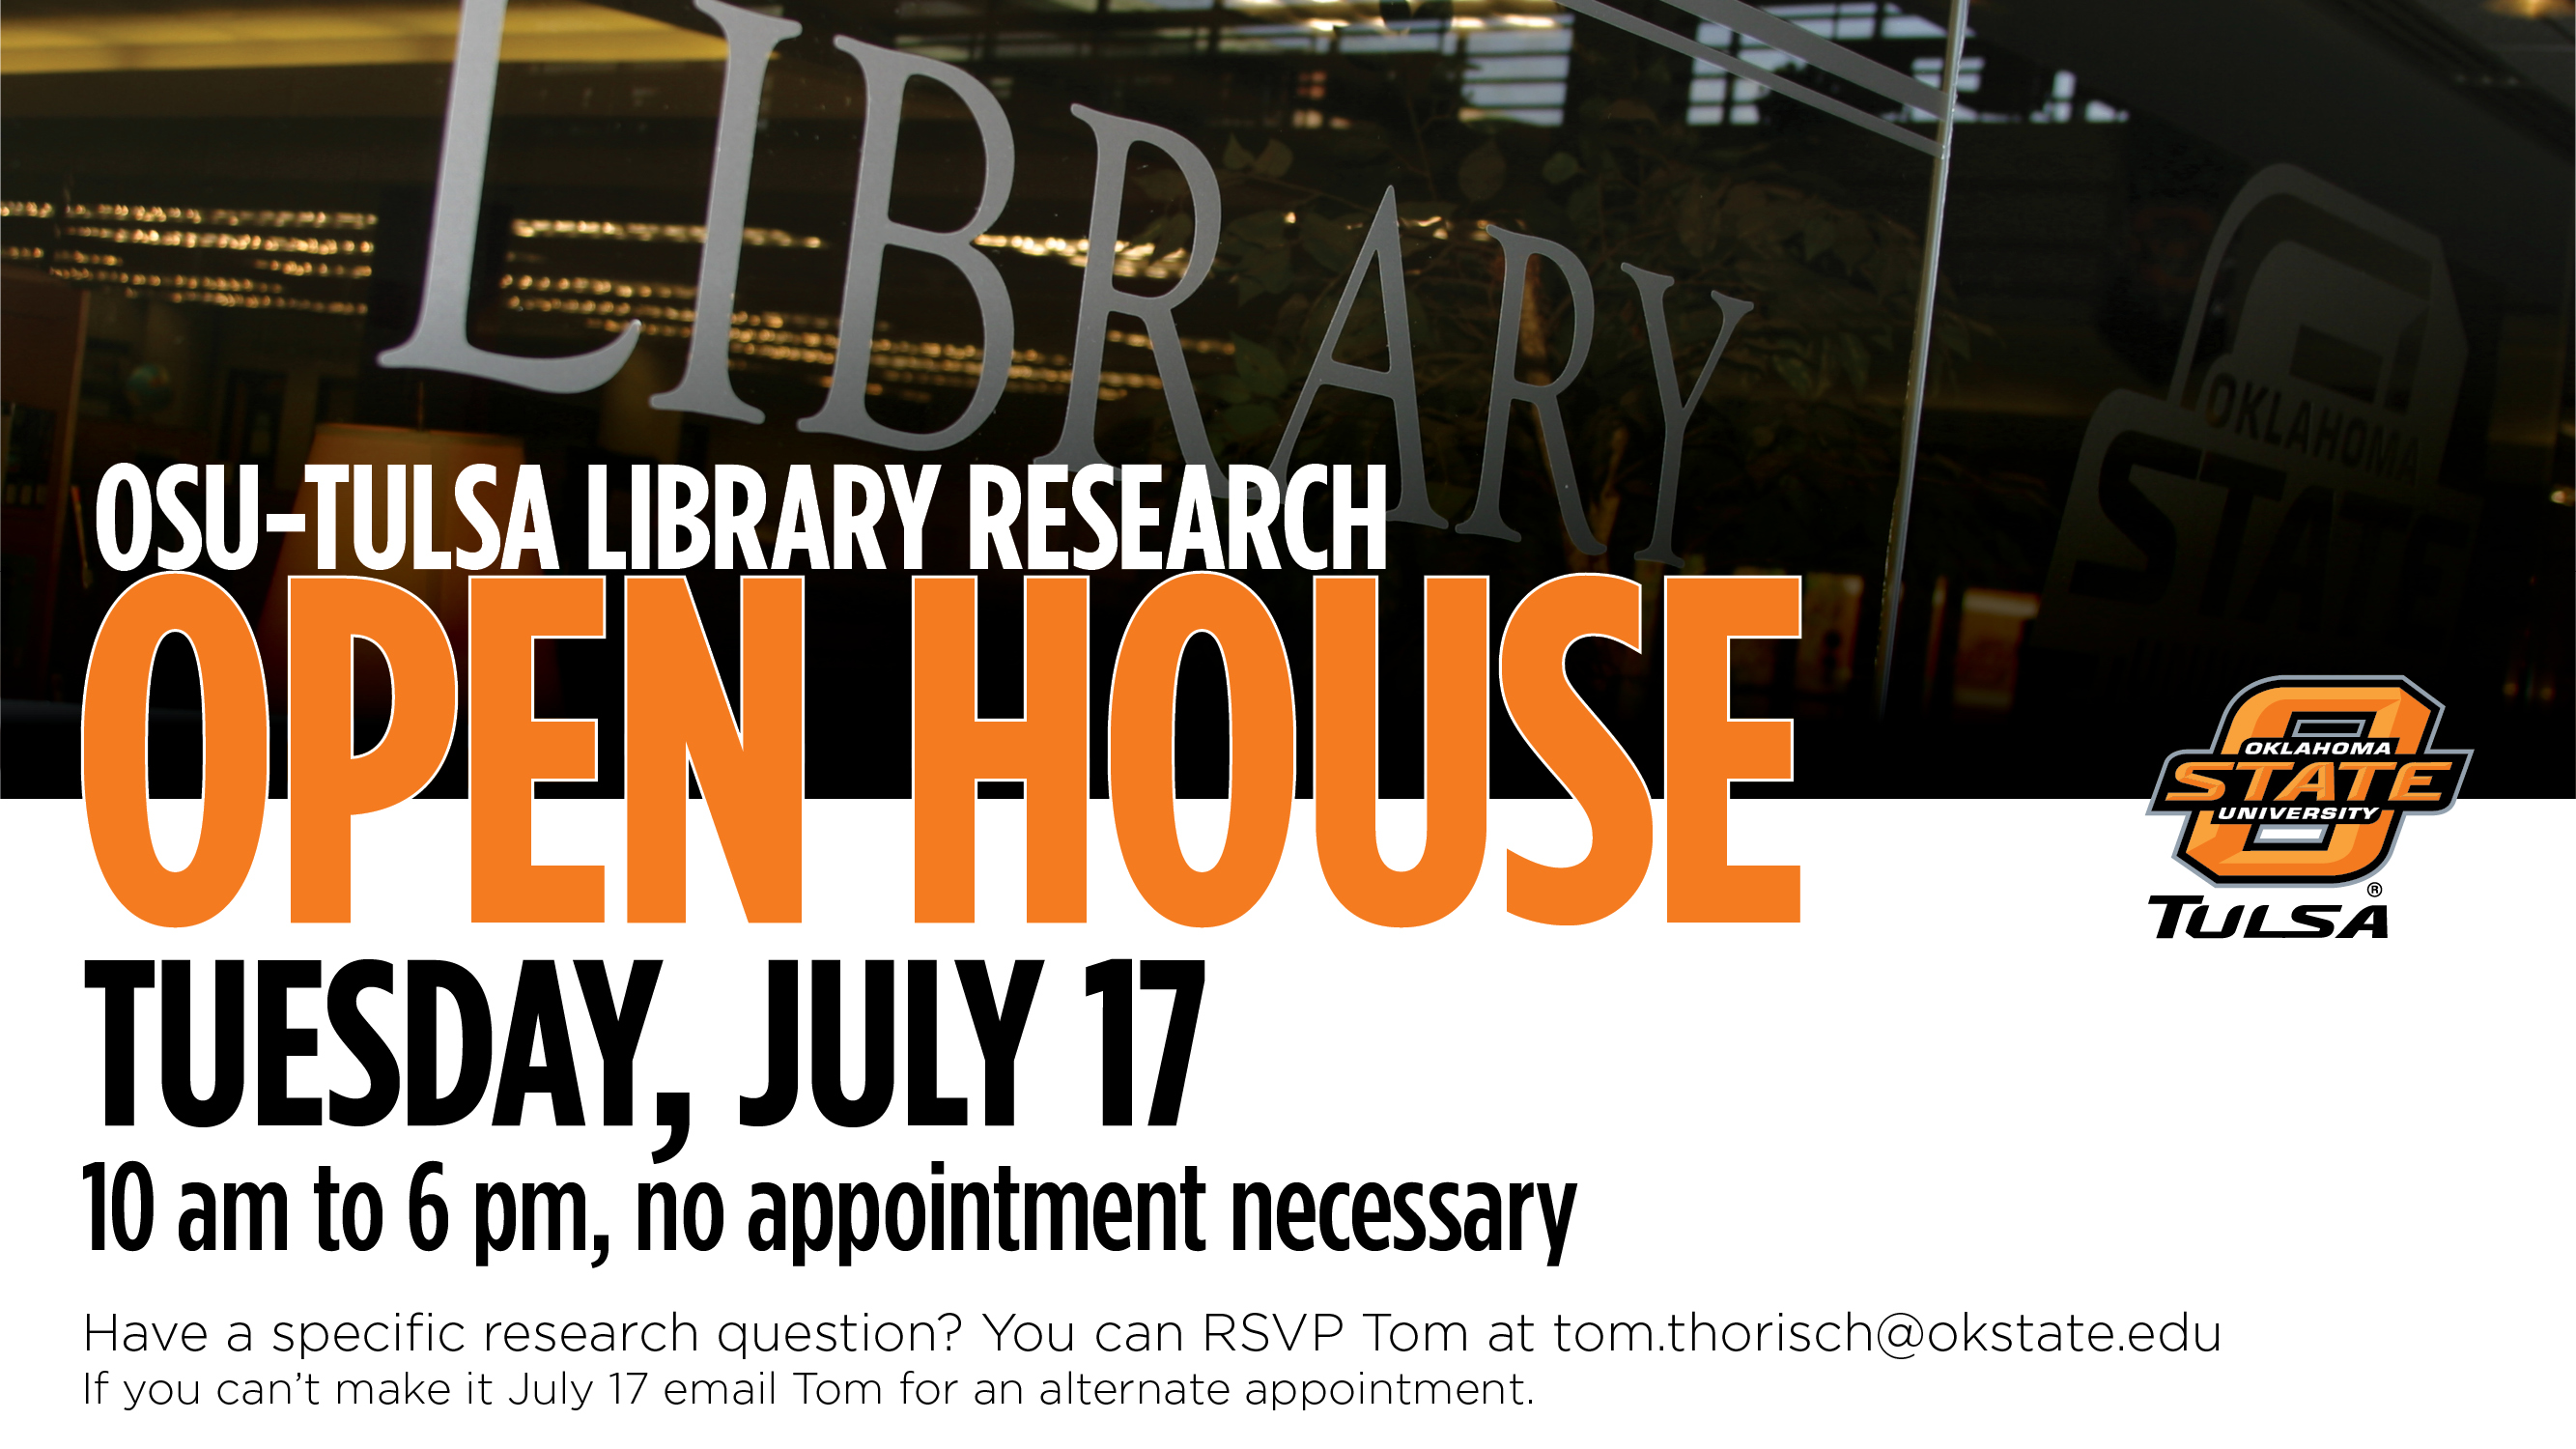 OSU-Tulsa Library Open House - Tuesday July 17 - 10 a.m. to 6 p.m. - No appointment necessary